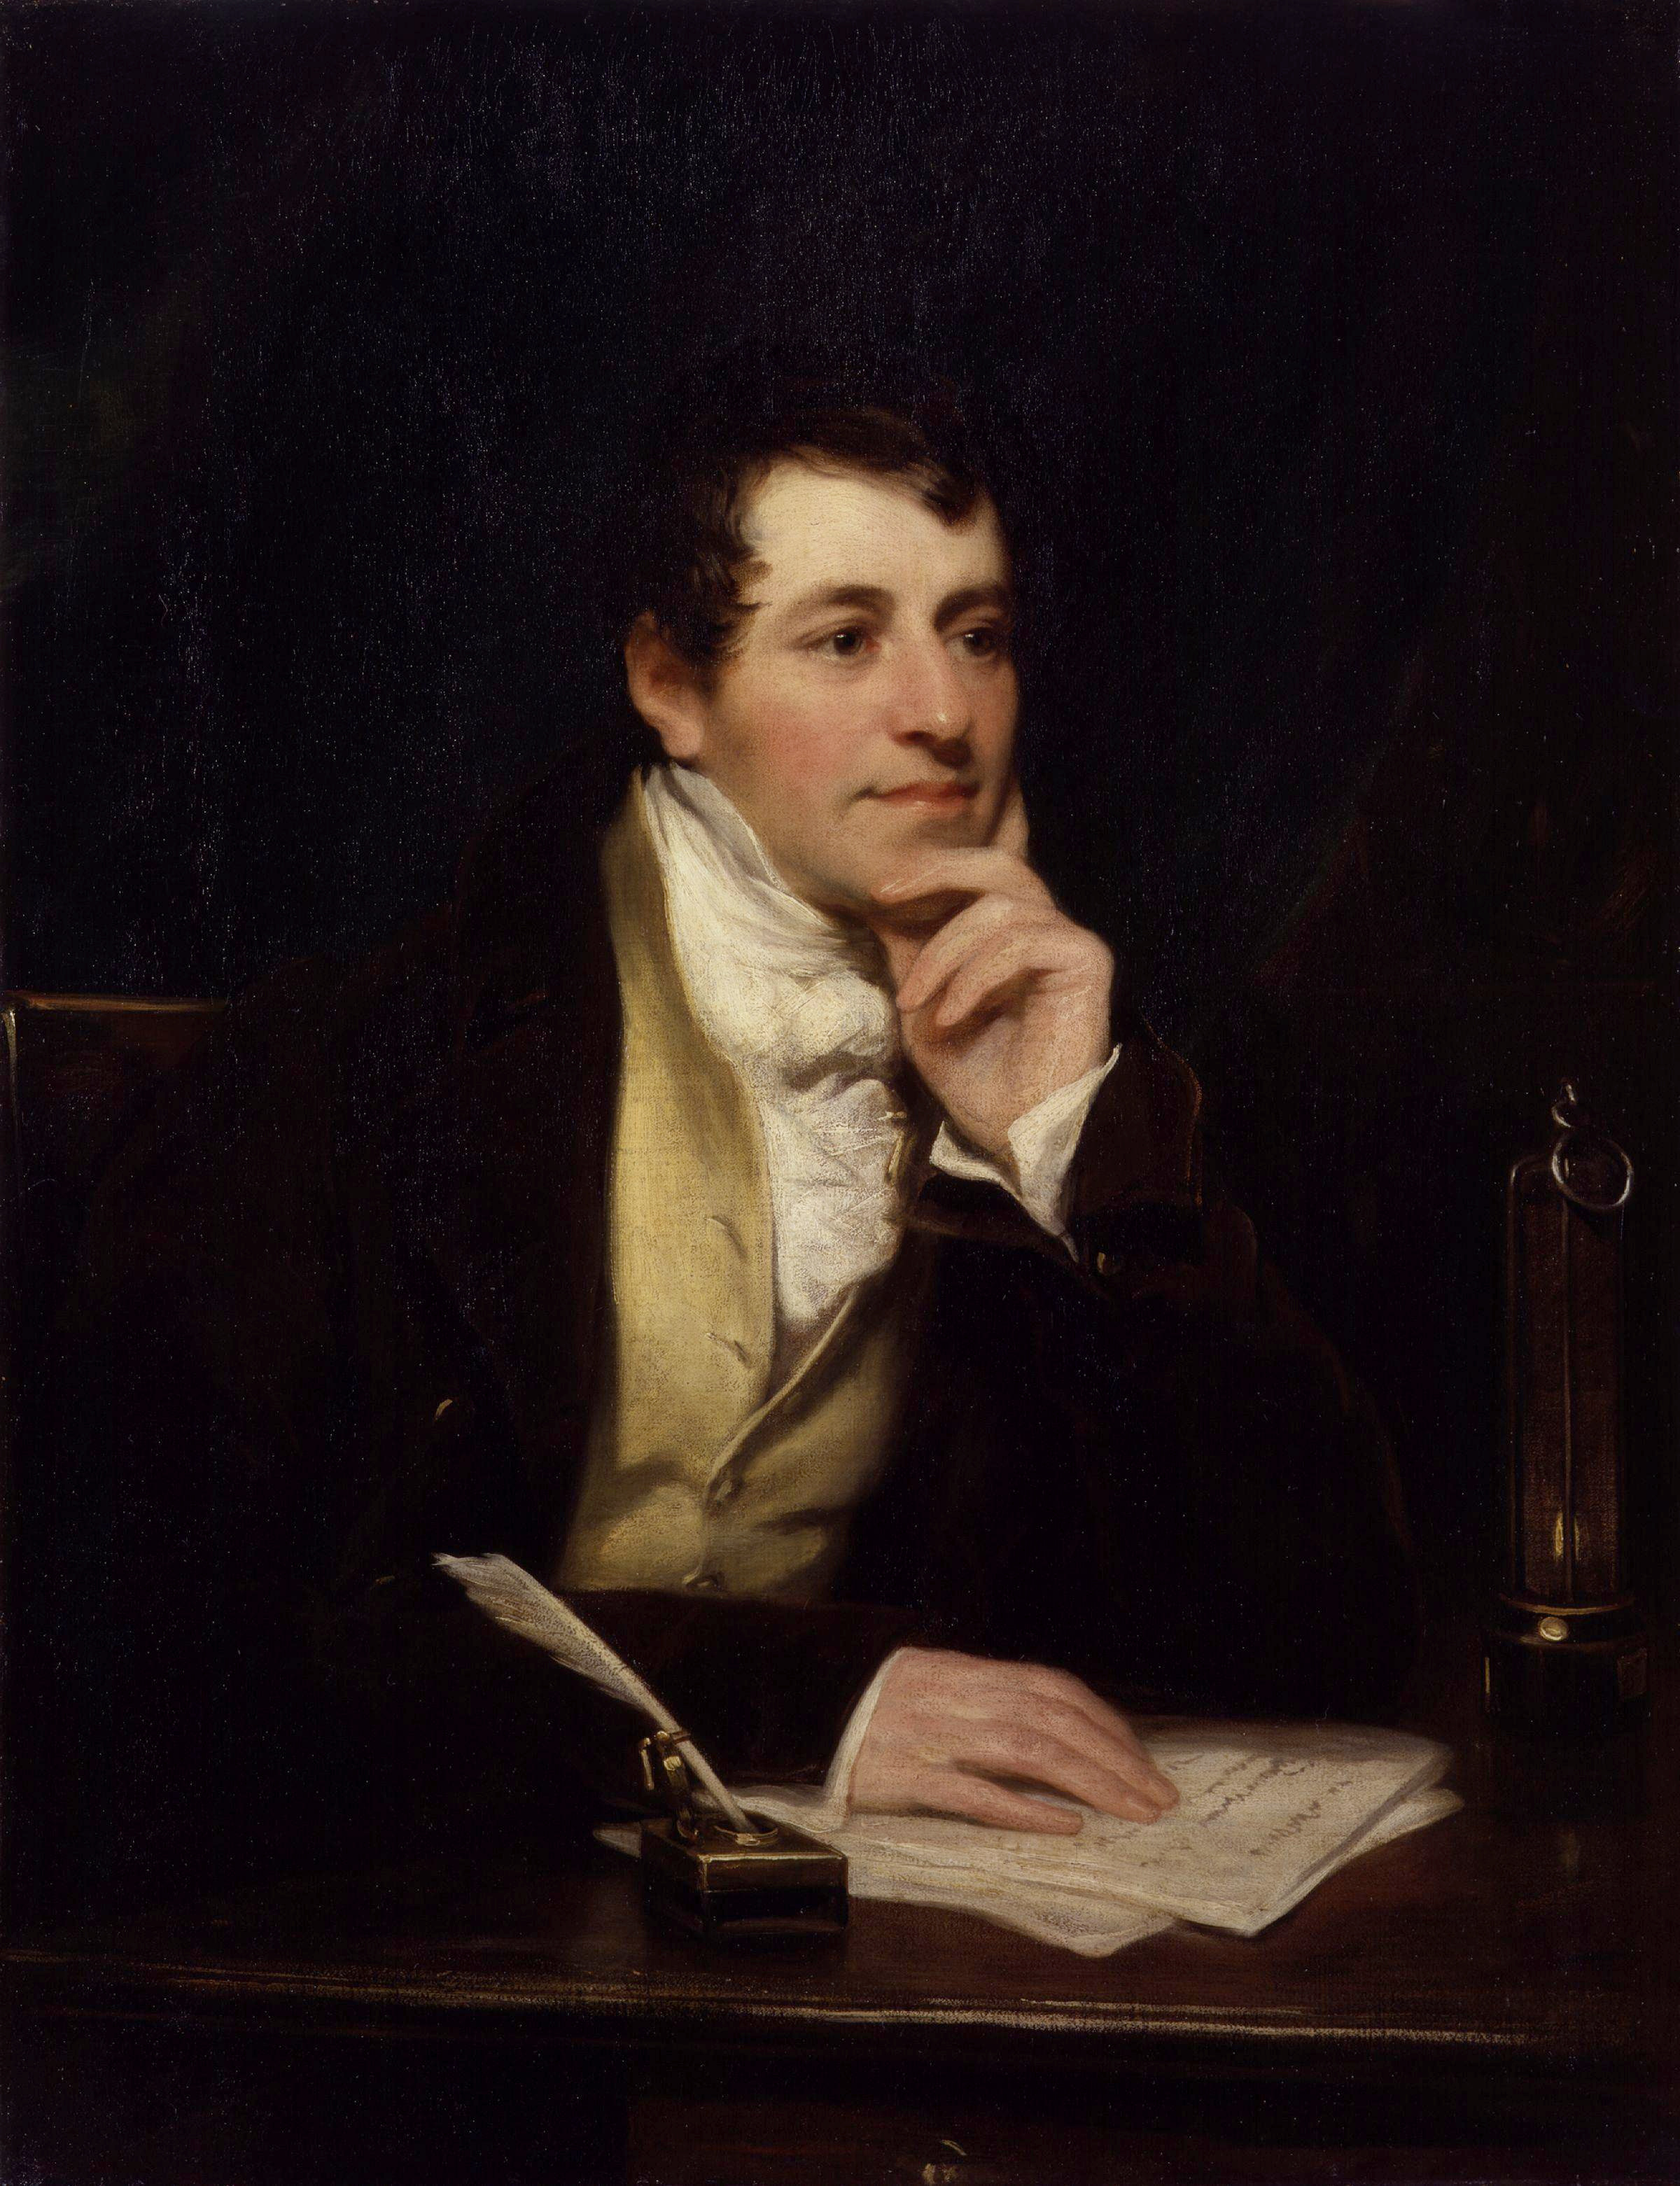 Sir Humphry Davy considers his next experiment